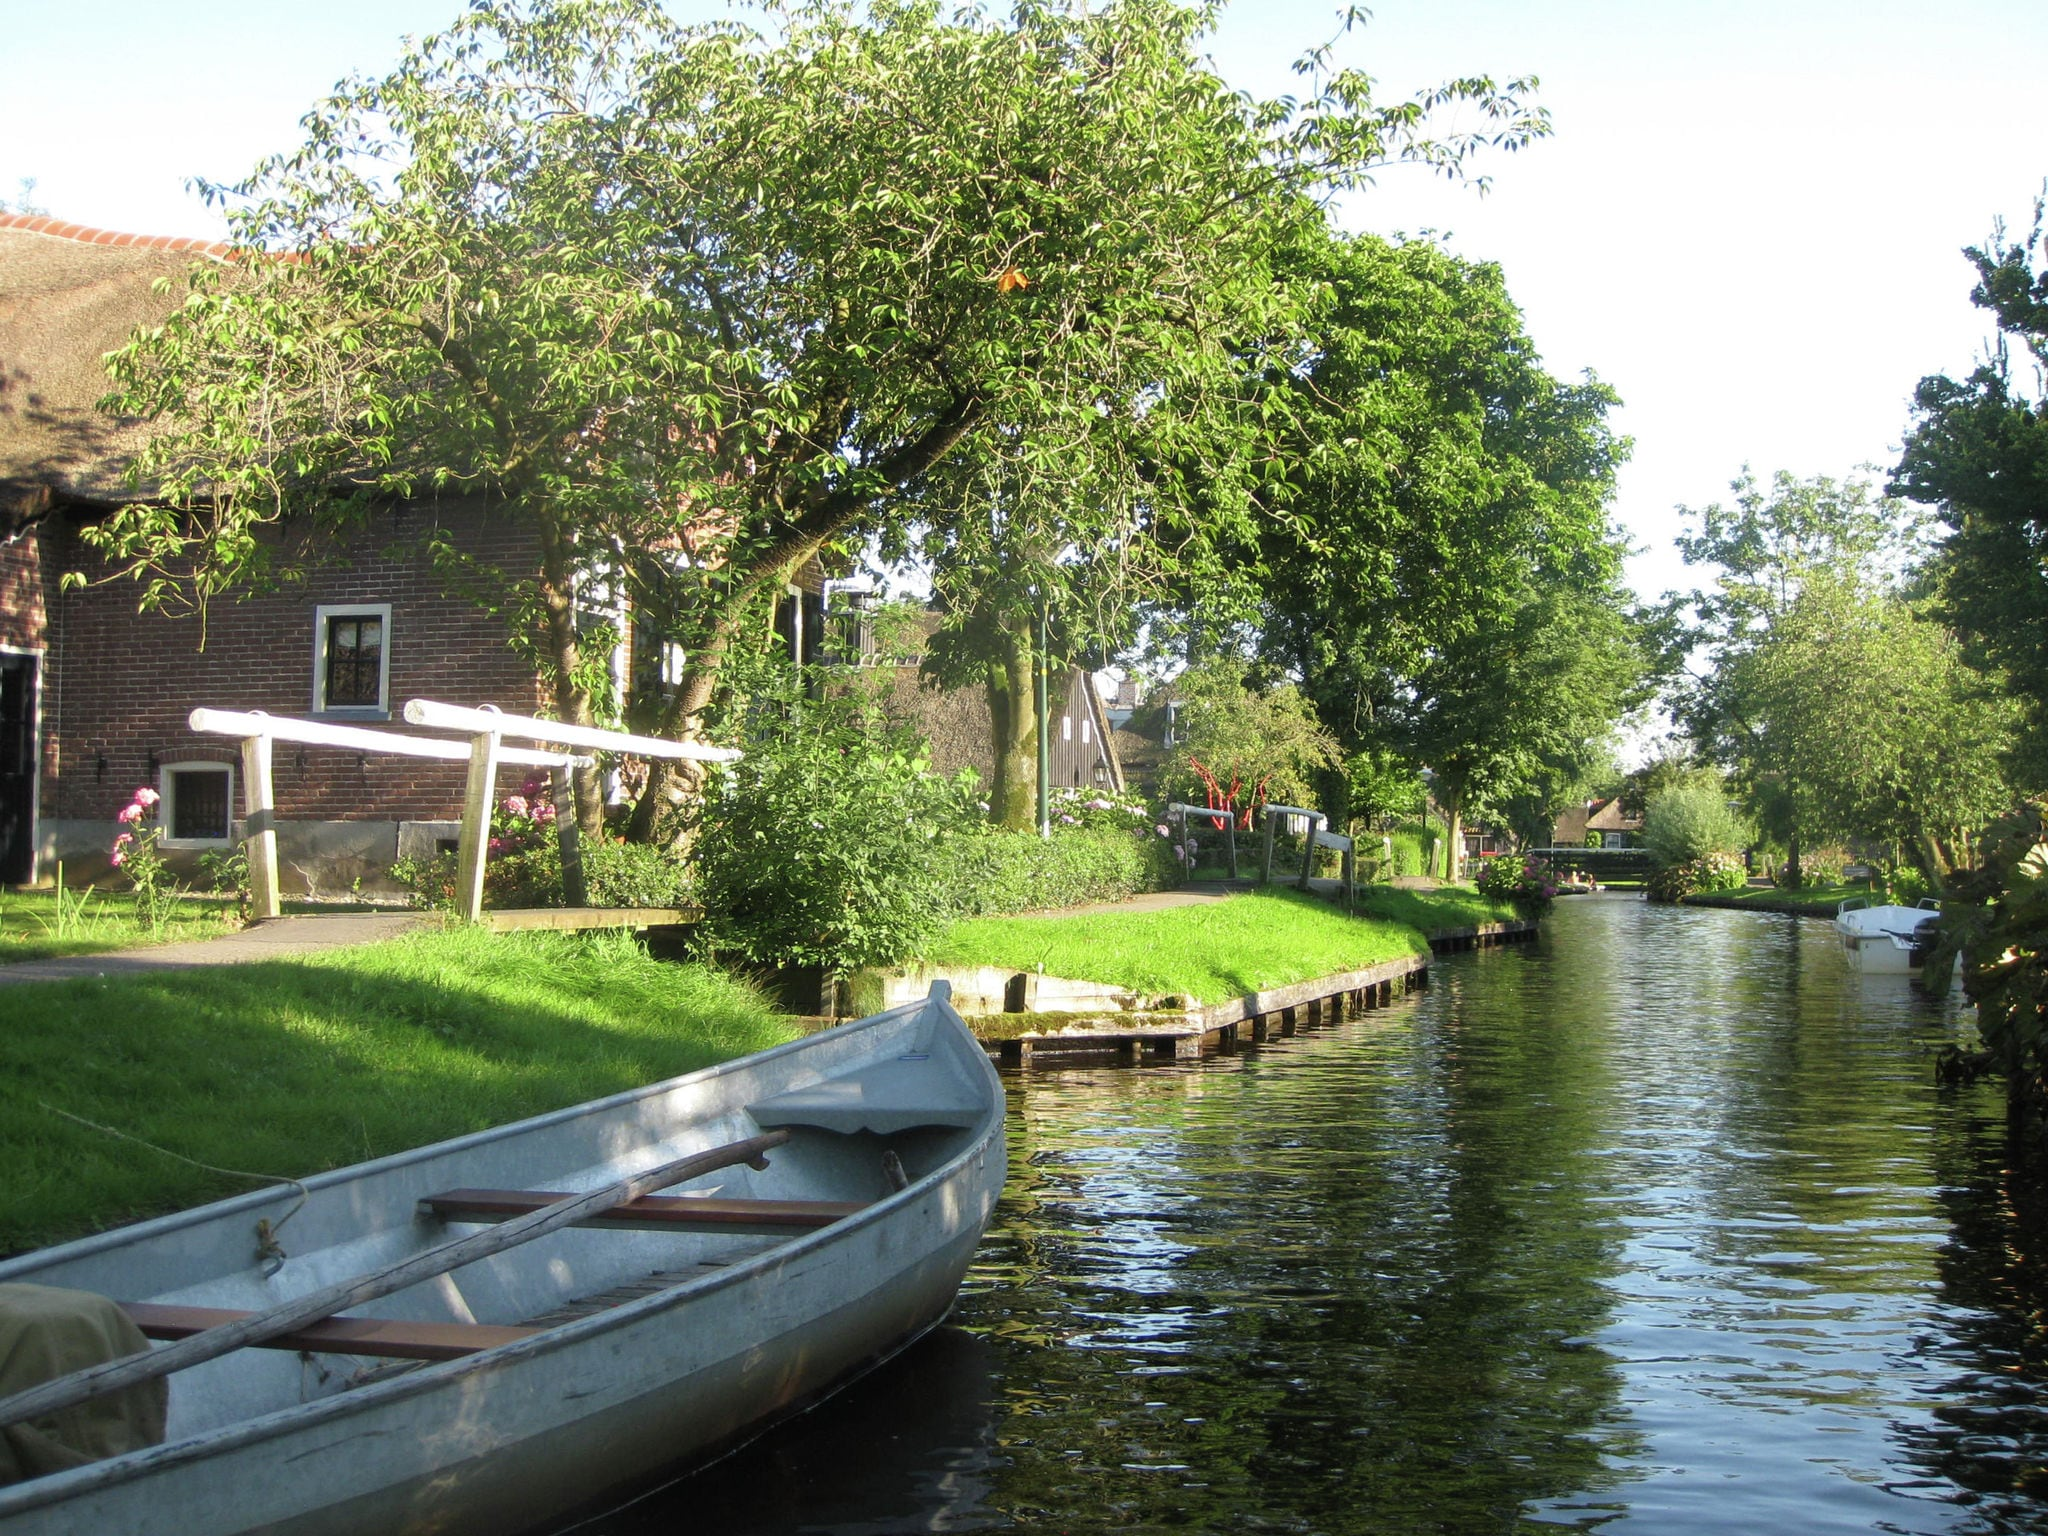 Holland | Overijssel | Holiday home Waterresort Bodelaeke - Ruimte aan 't Water | all year | AreaSummer1KM